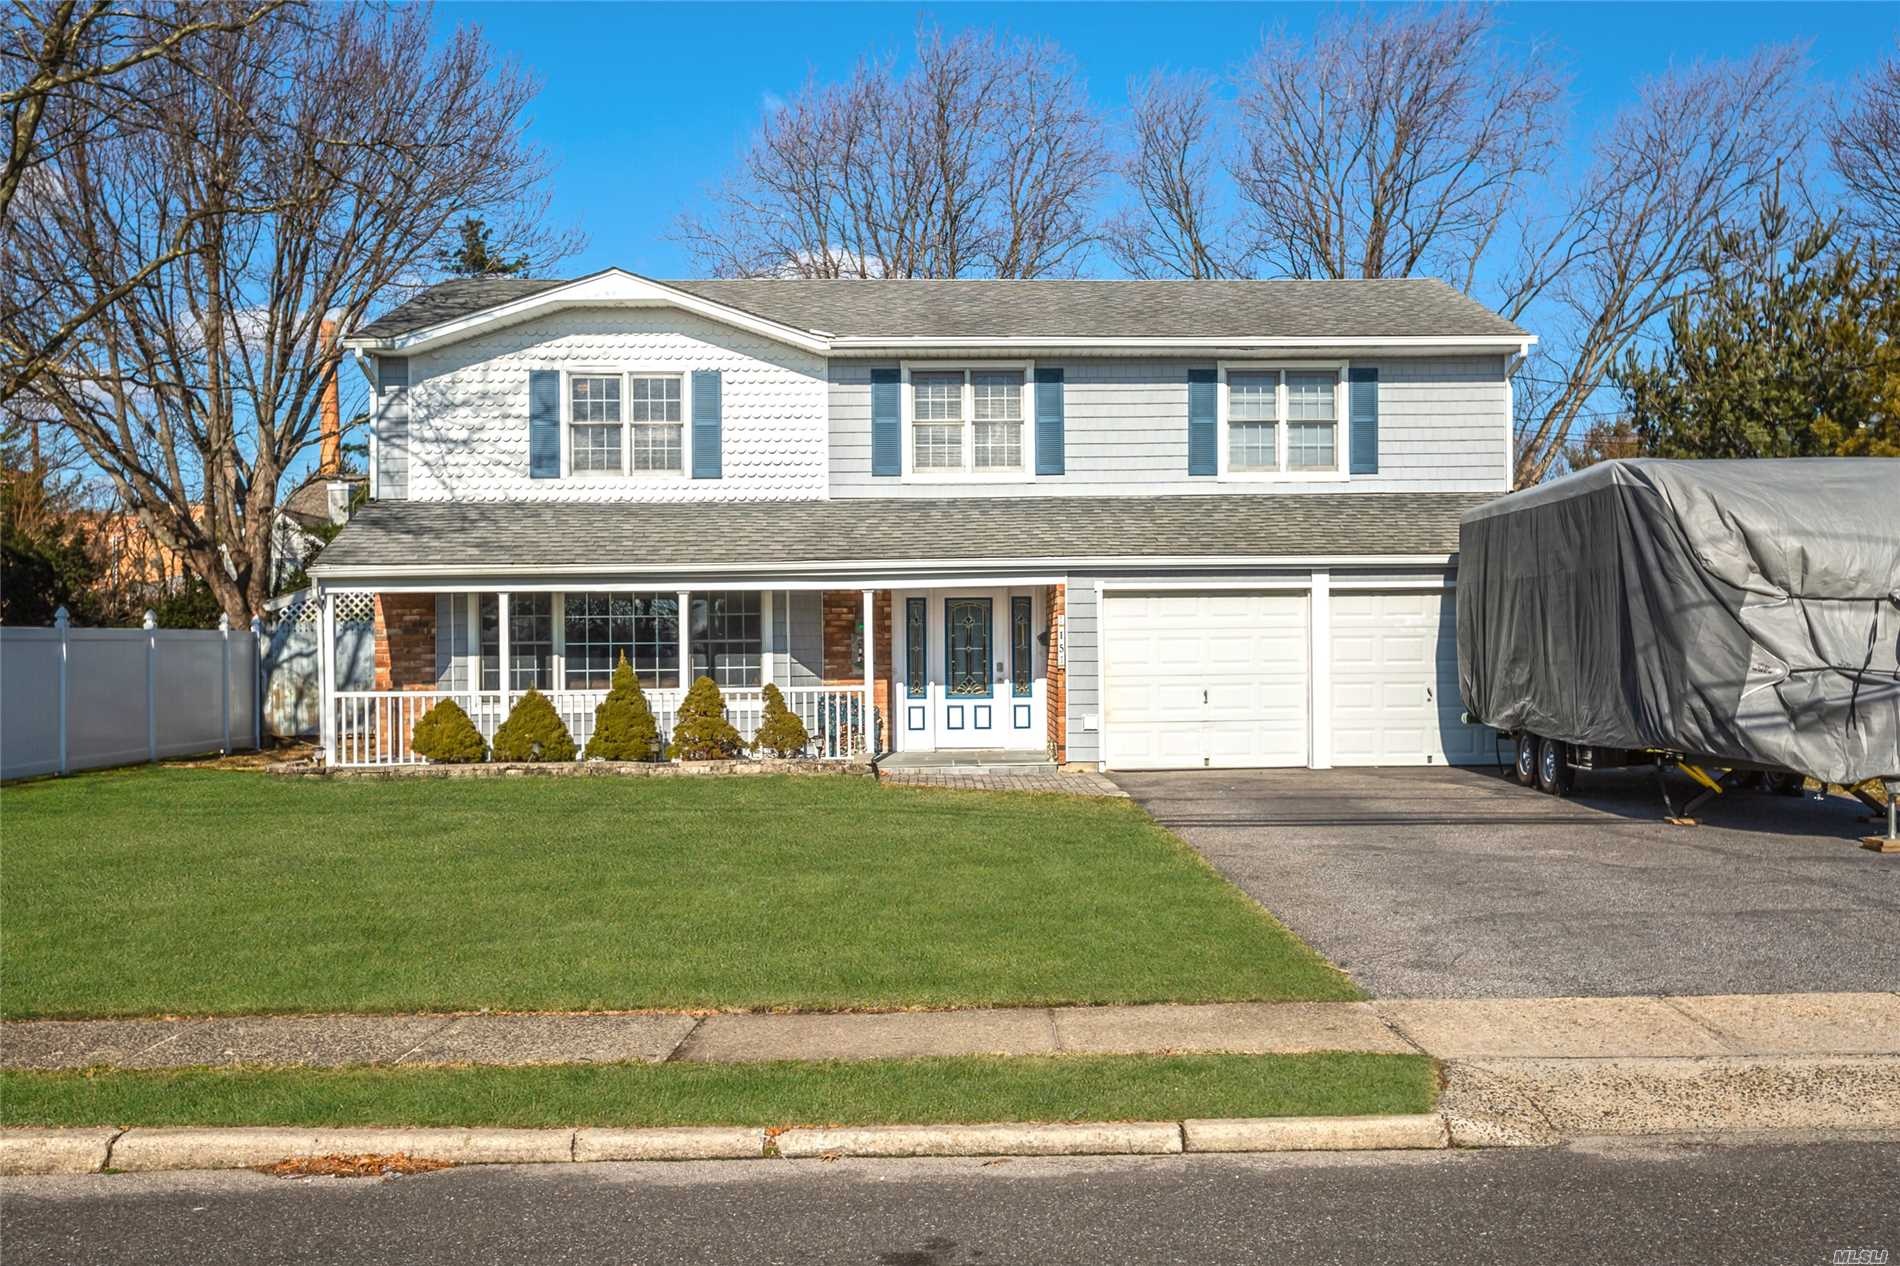 Expansive Colonial South Of Montauk With Many Updates! New Floors, Kitchen Countertops, Central Air, On Demand Boiler, Bathroom & More! This Colonial Boasts 6 Bedrooms, 2.5 Baths, Master Ensuite, Oversized Living Room, Den With Fireplace, 3 Season Room, 2 Car Garage & Much, Much More! No Flood Insurance Required